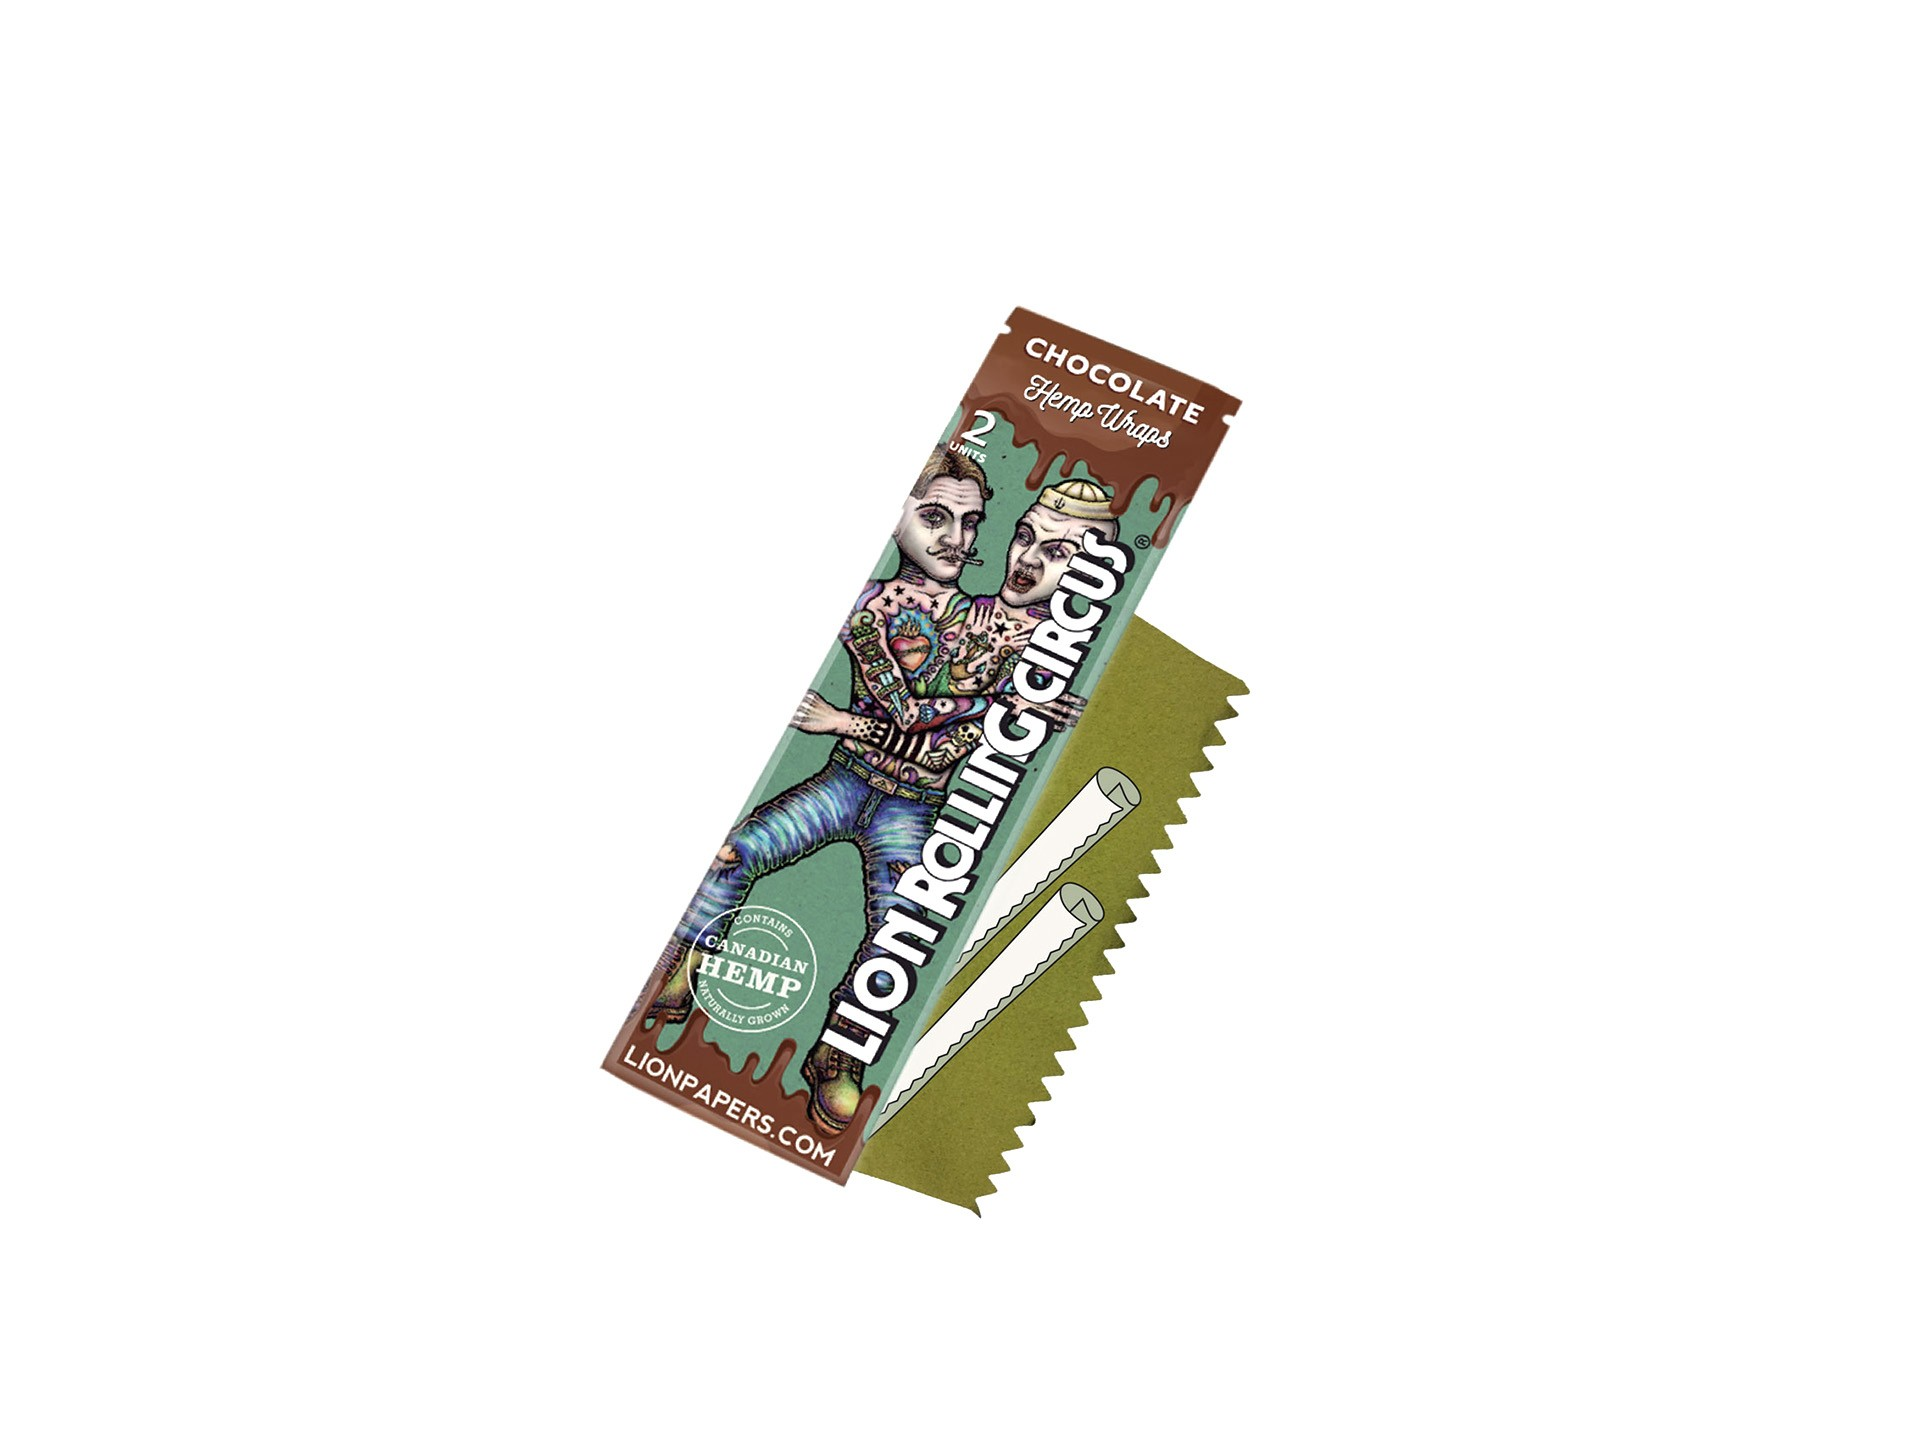 Blunt Wrap Chocolate Lion Rolling Circus